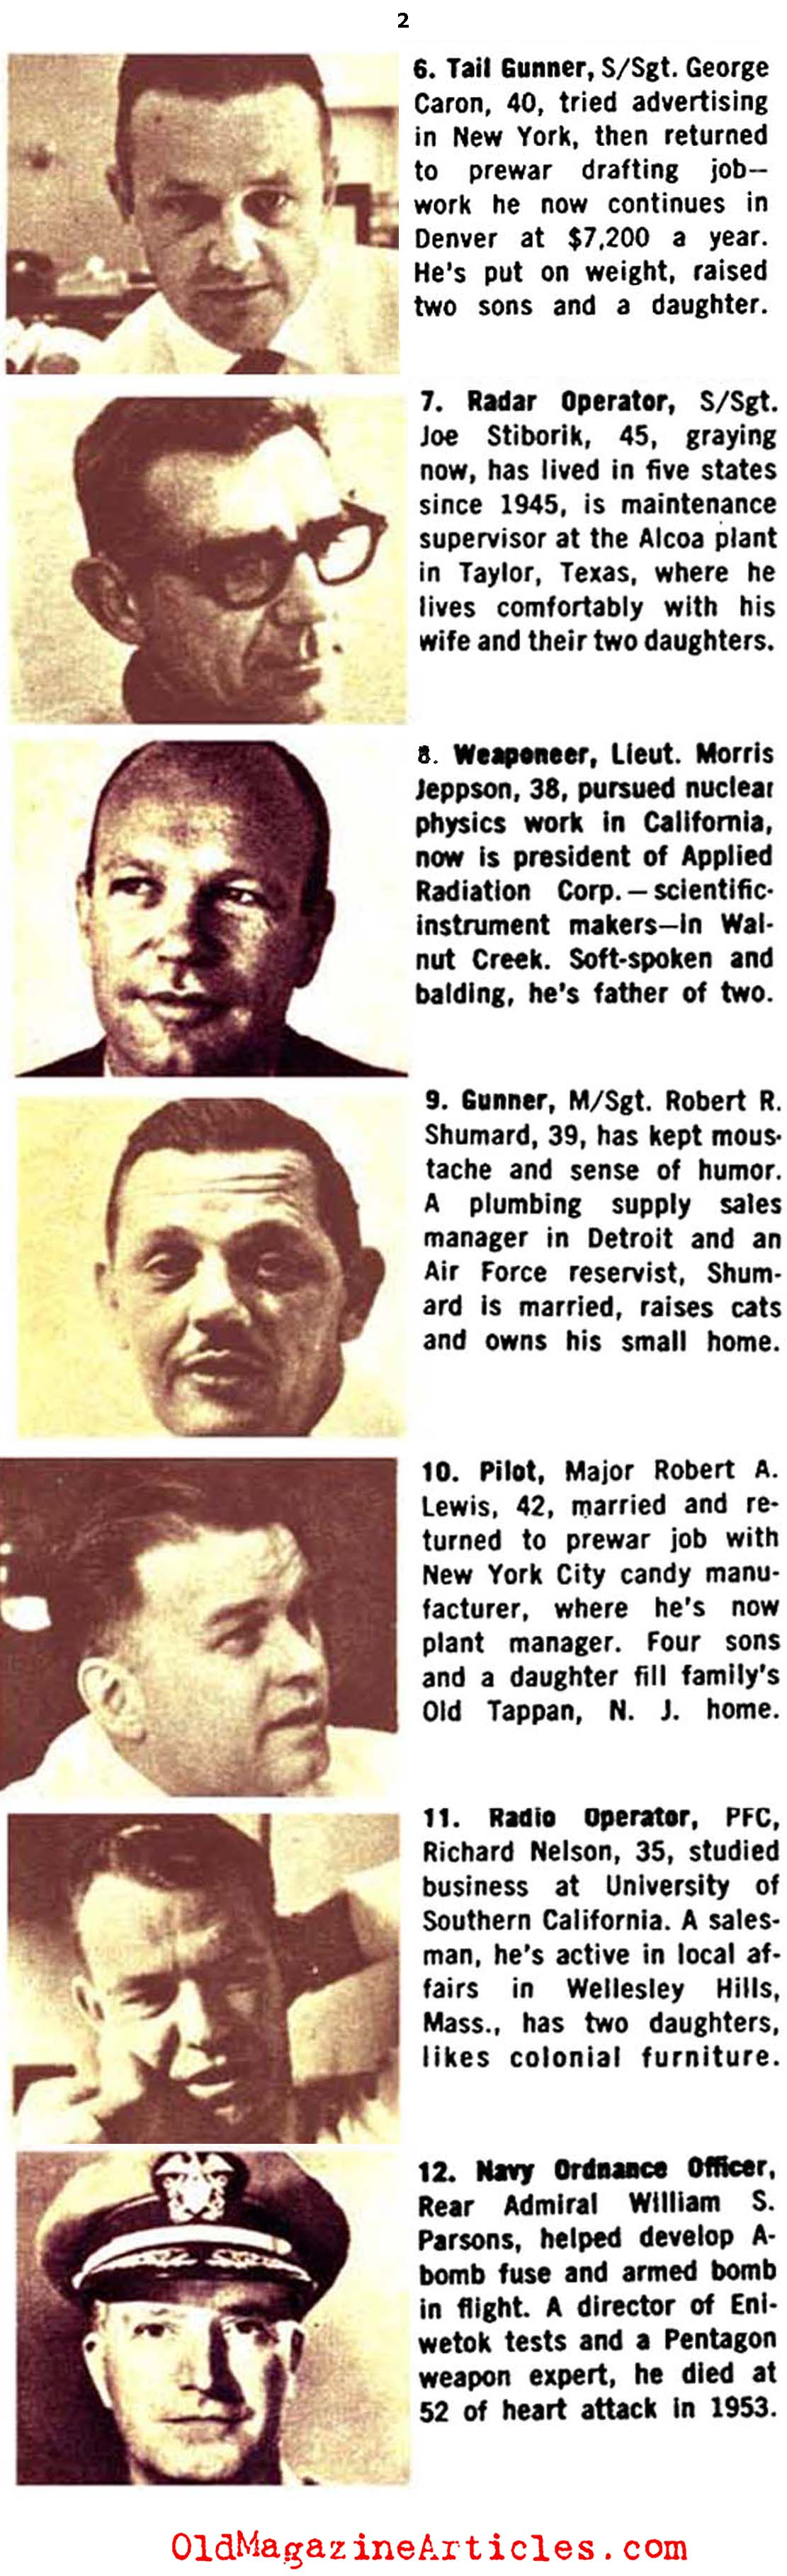 The Crew of the Enola Gay Fifteen Years Later   (Coronet Magazine, 1960)